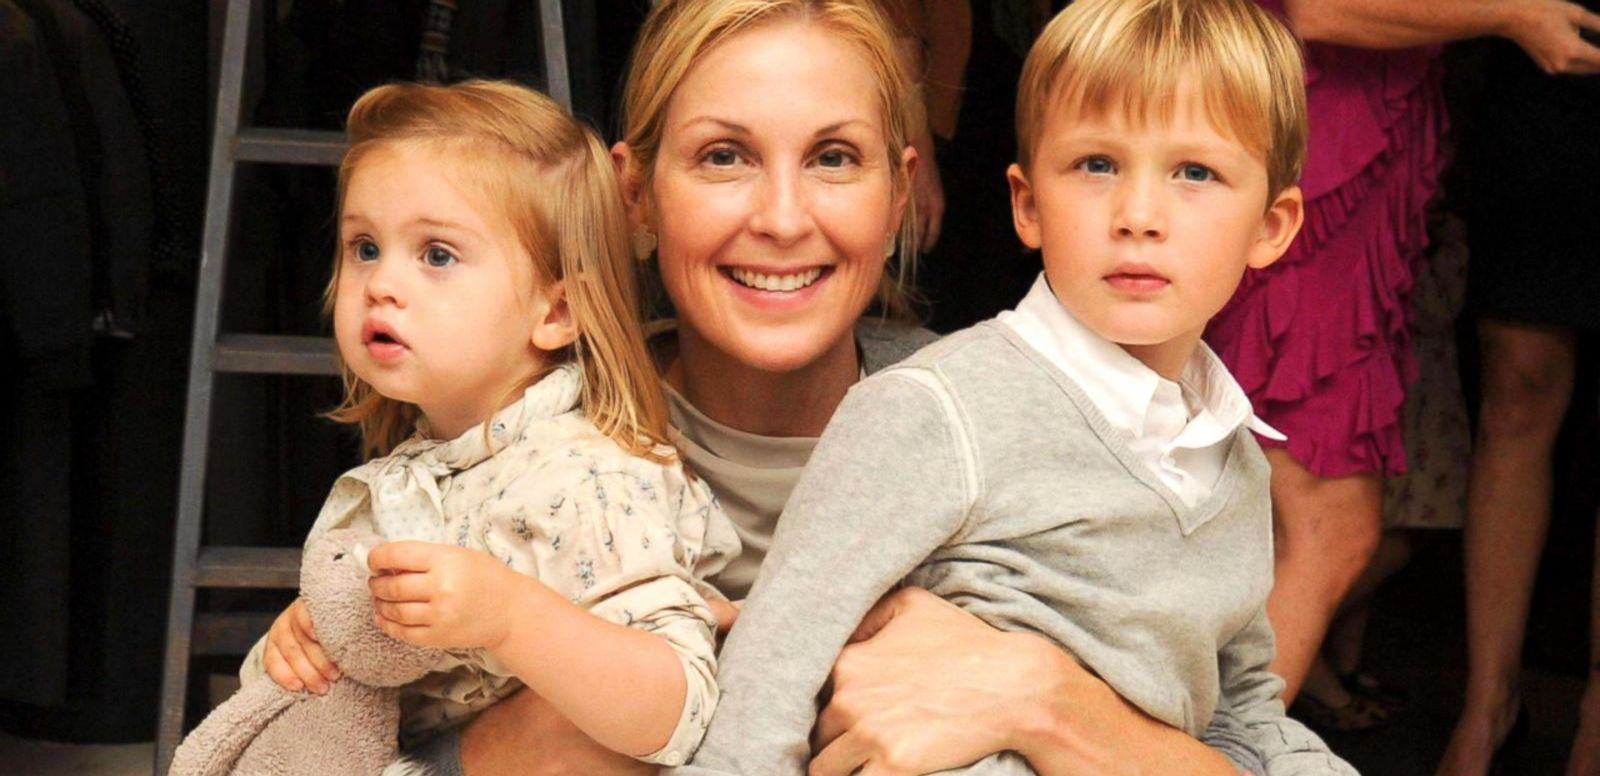 VIDEO: Kelly Rutherford Granted Temporary Sole Custody of Children